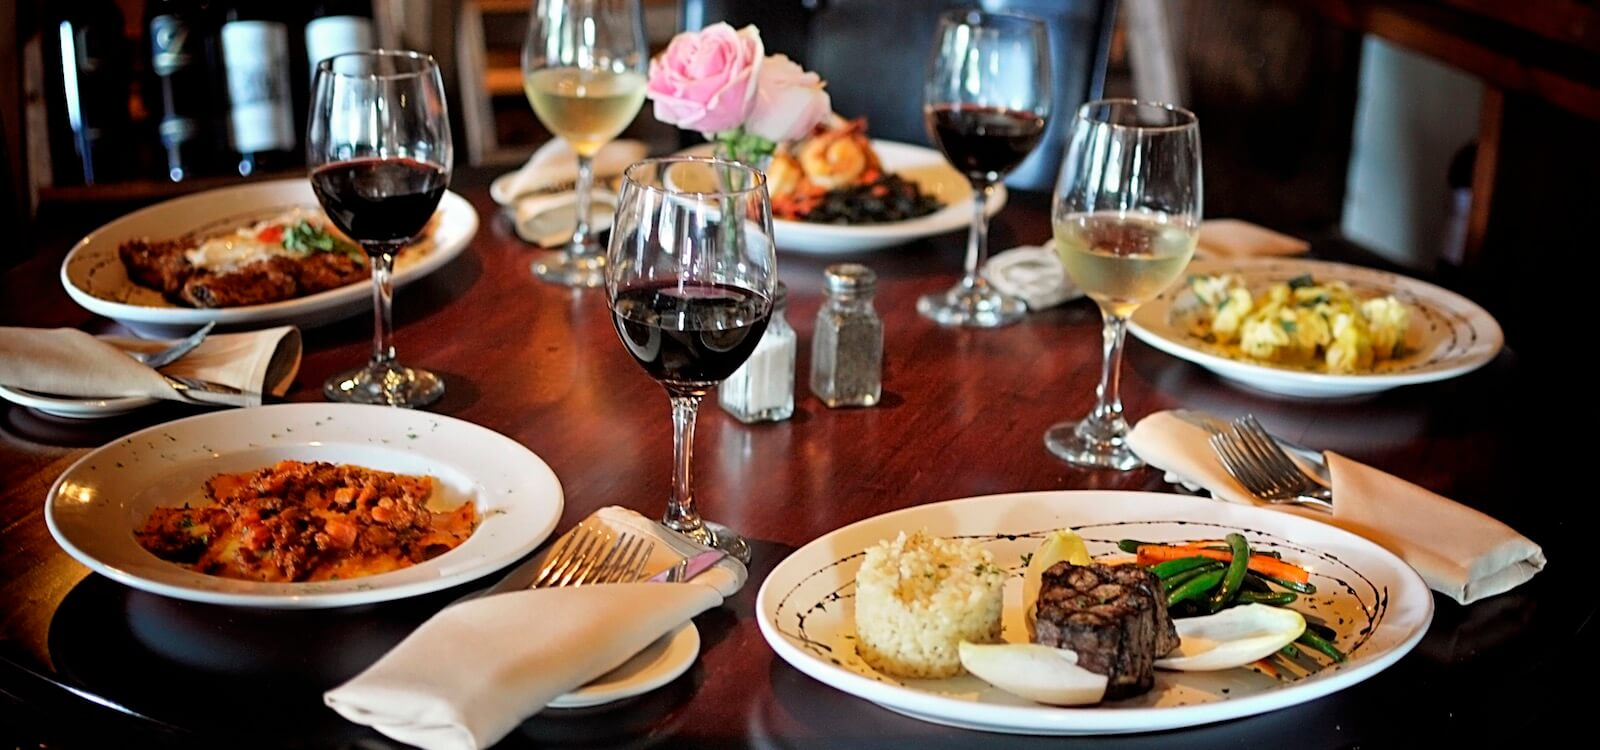 Mustdo The Best Casual To Fine Dining Restaurants You Should Visit While On